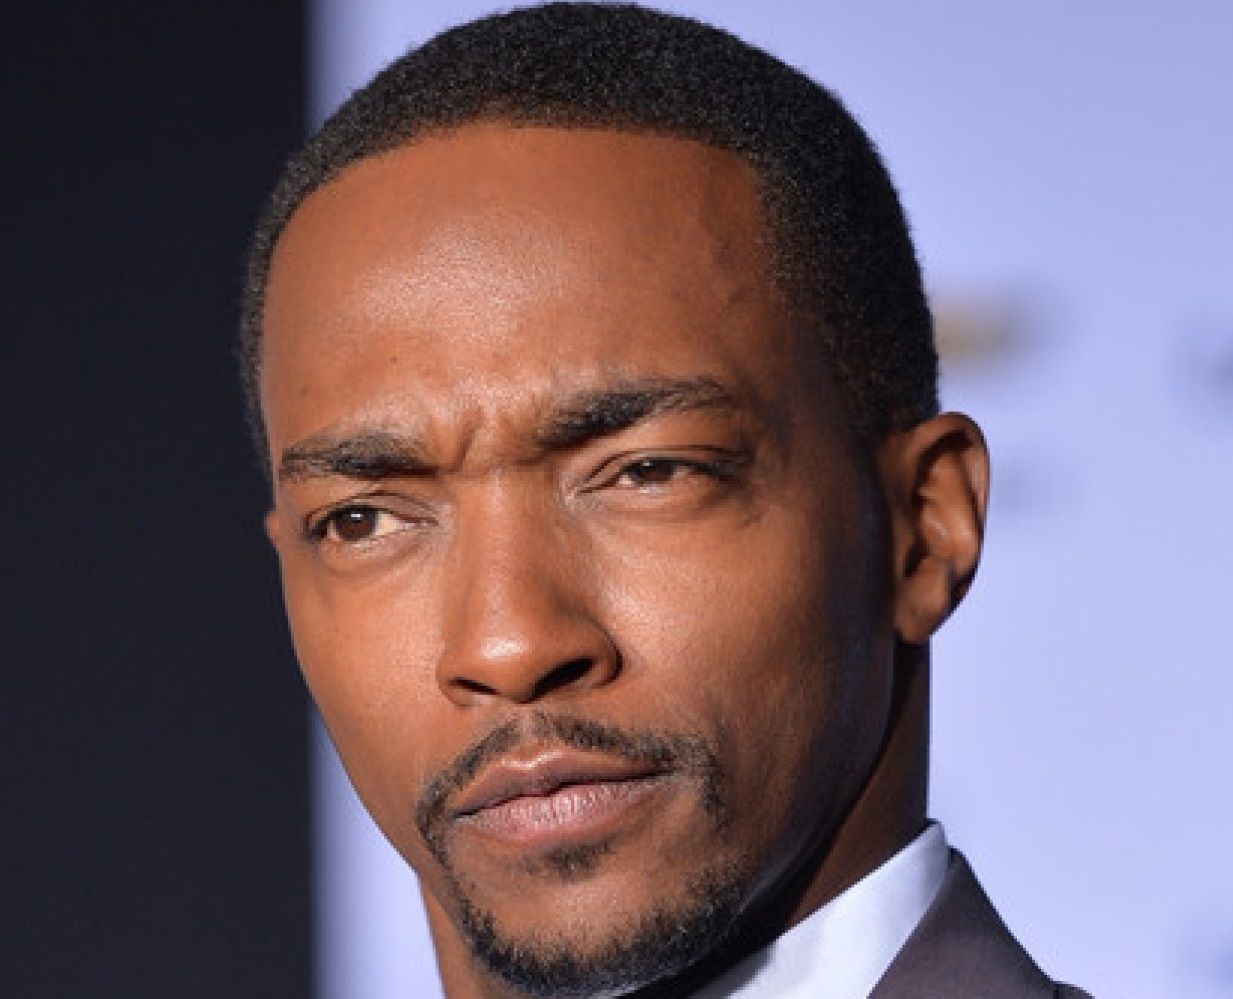 Why We Shouldn't Be Surprised That Anthony Mackie Blames Dreadlocks for Racial Profiling